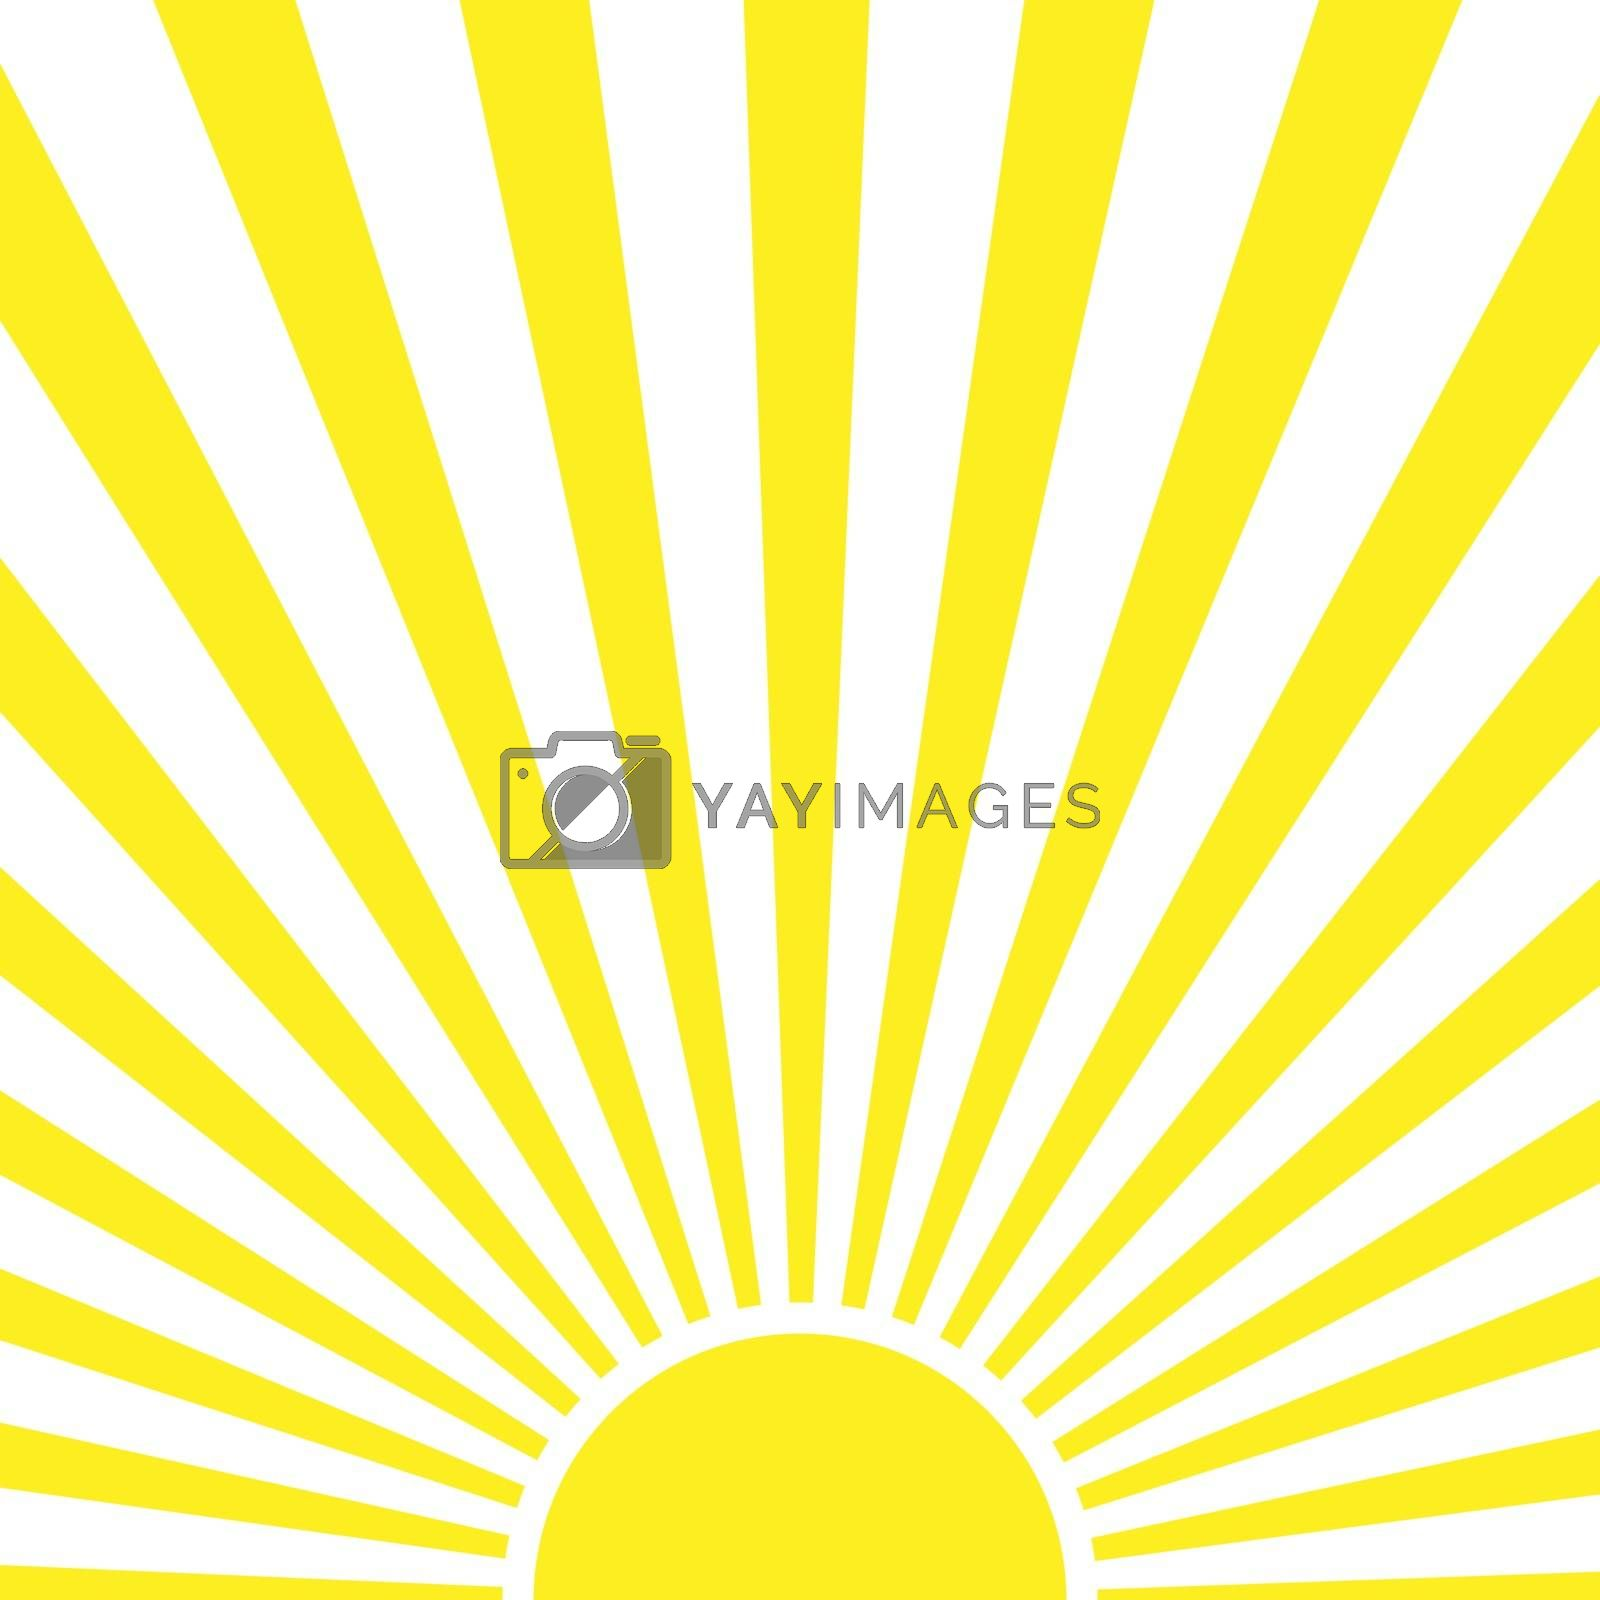 Rays of the rising sun for design and decoration